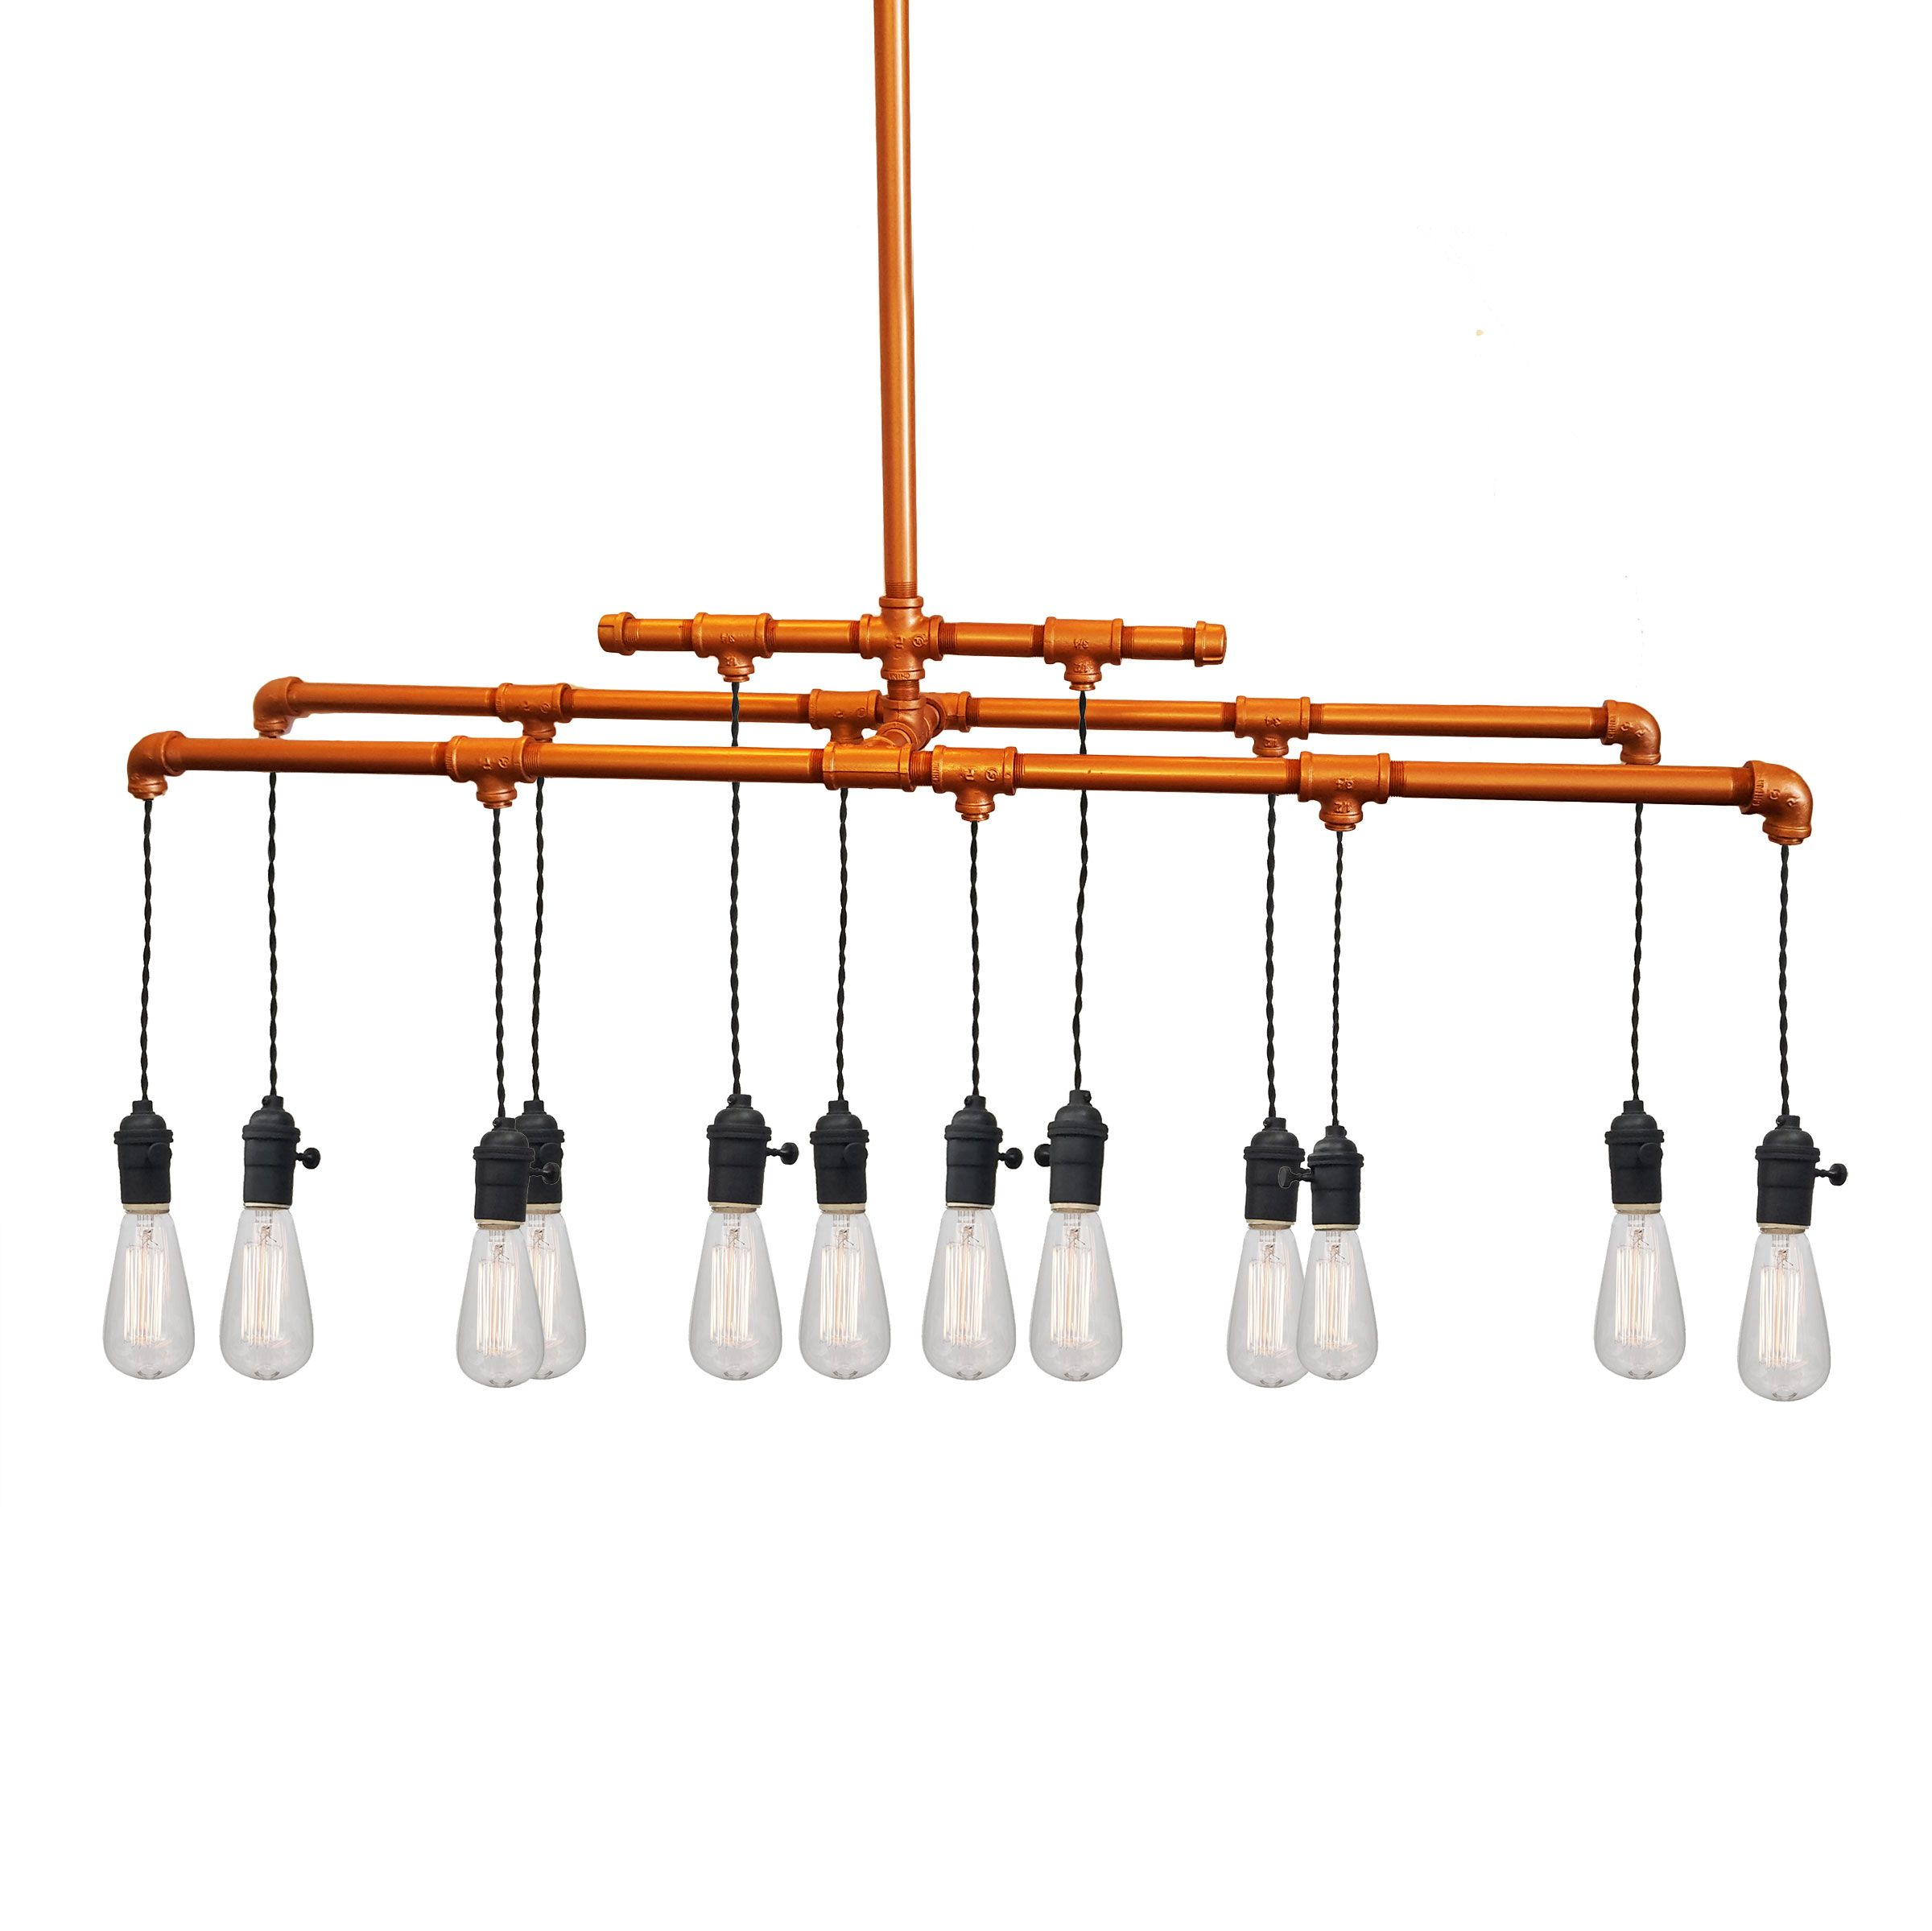 Hand Crafted Industrial Rustic Copper Pipe Chandelier 12